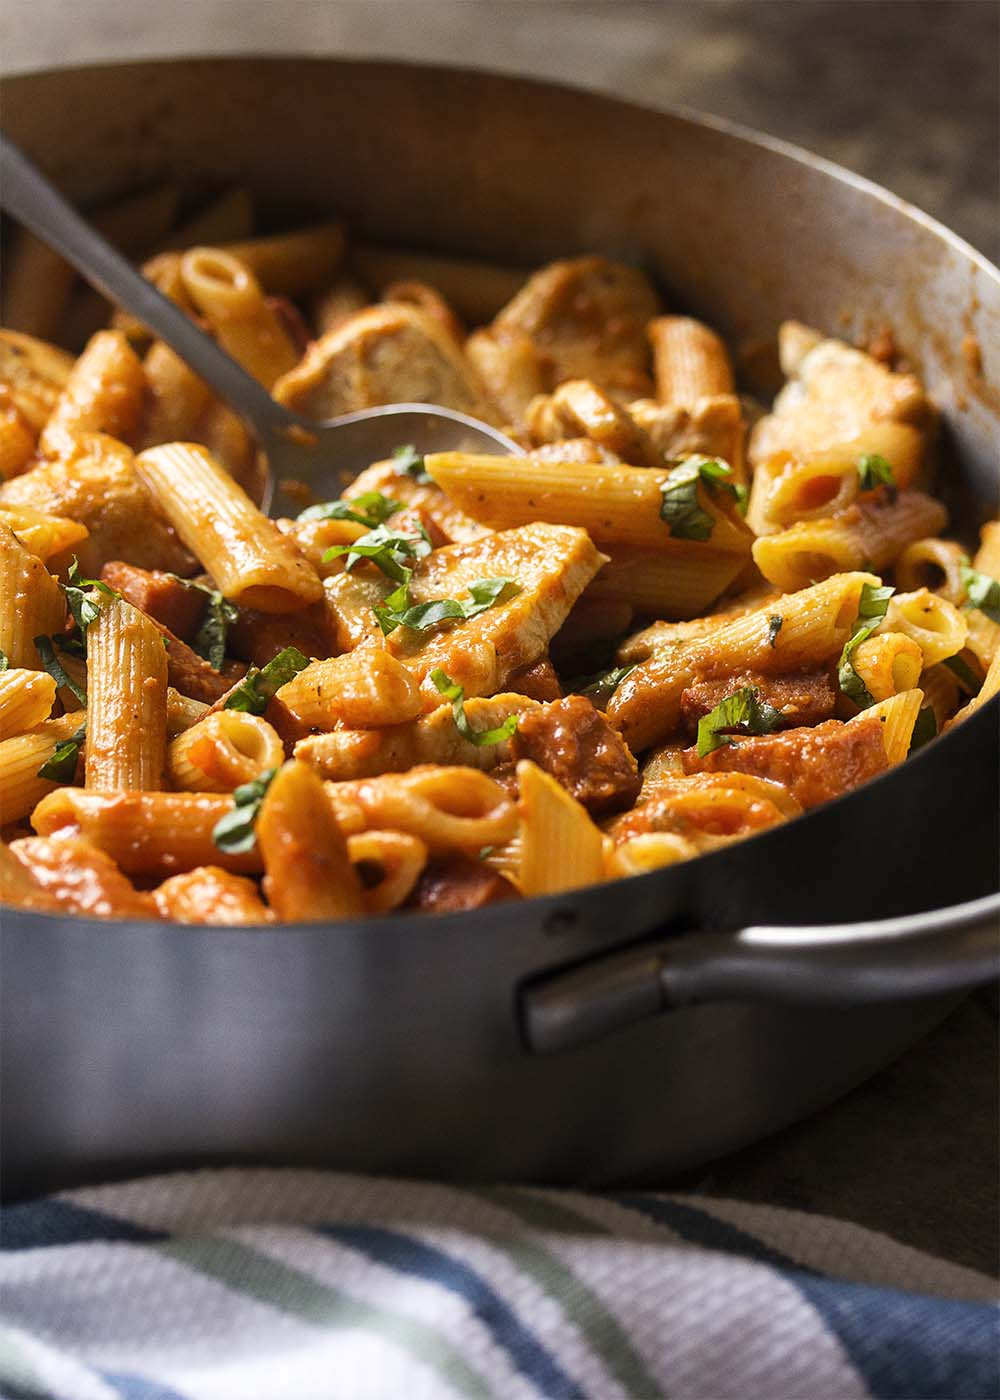 The finished penne alla vodka in the skillet with the chicken and chorizo mixed in and basil sprinkled over the top.